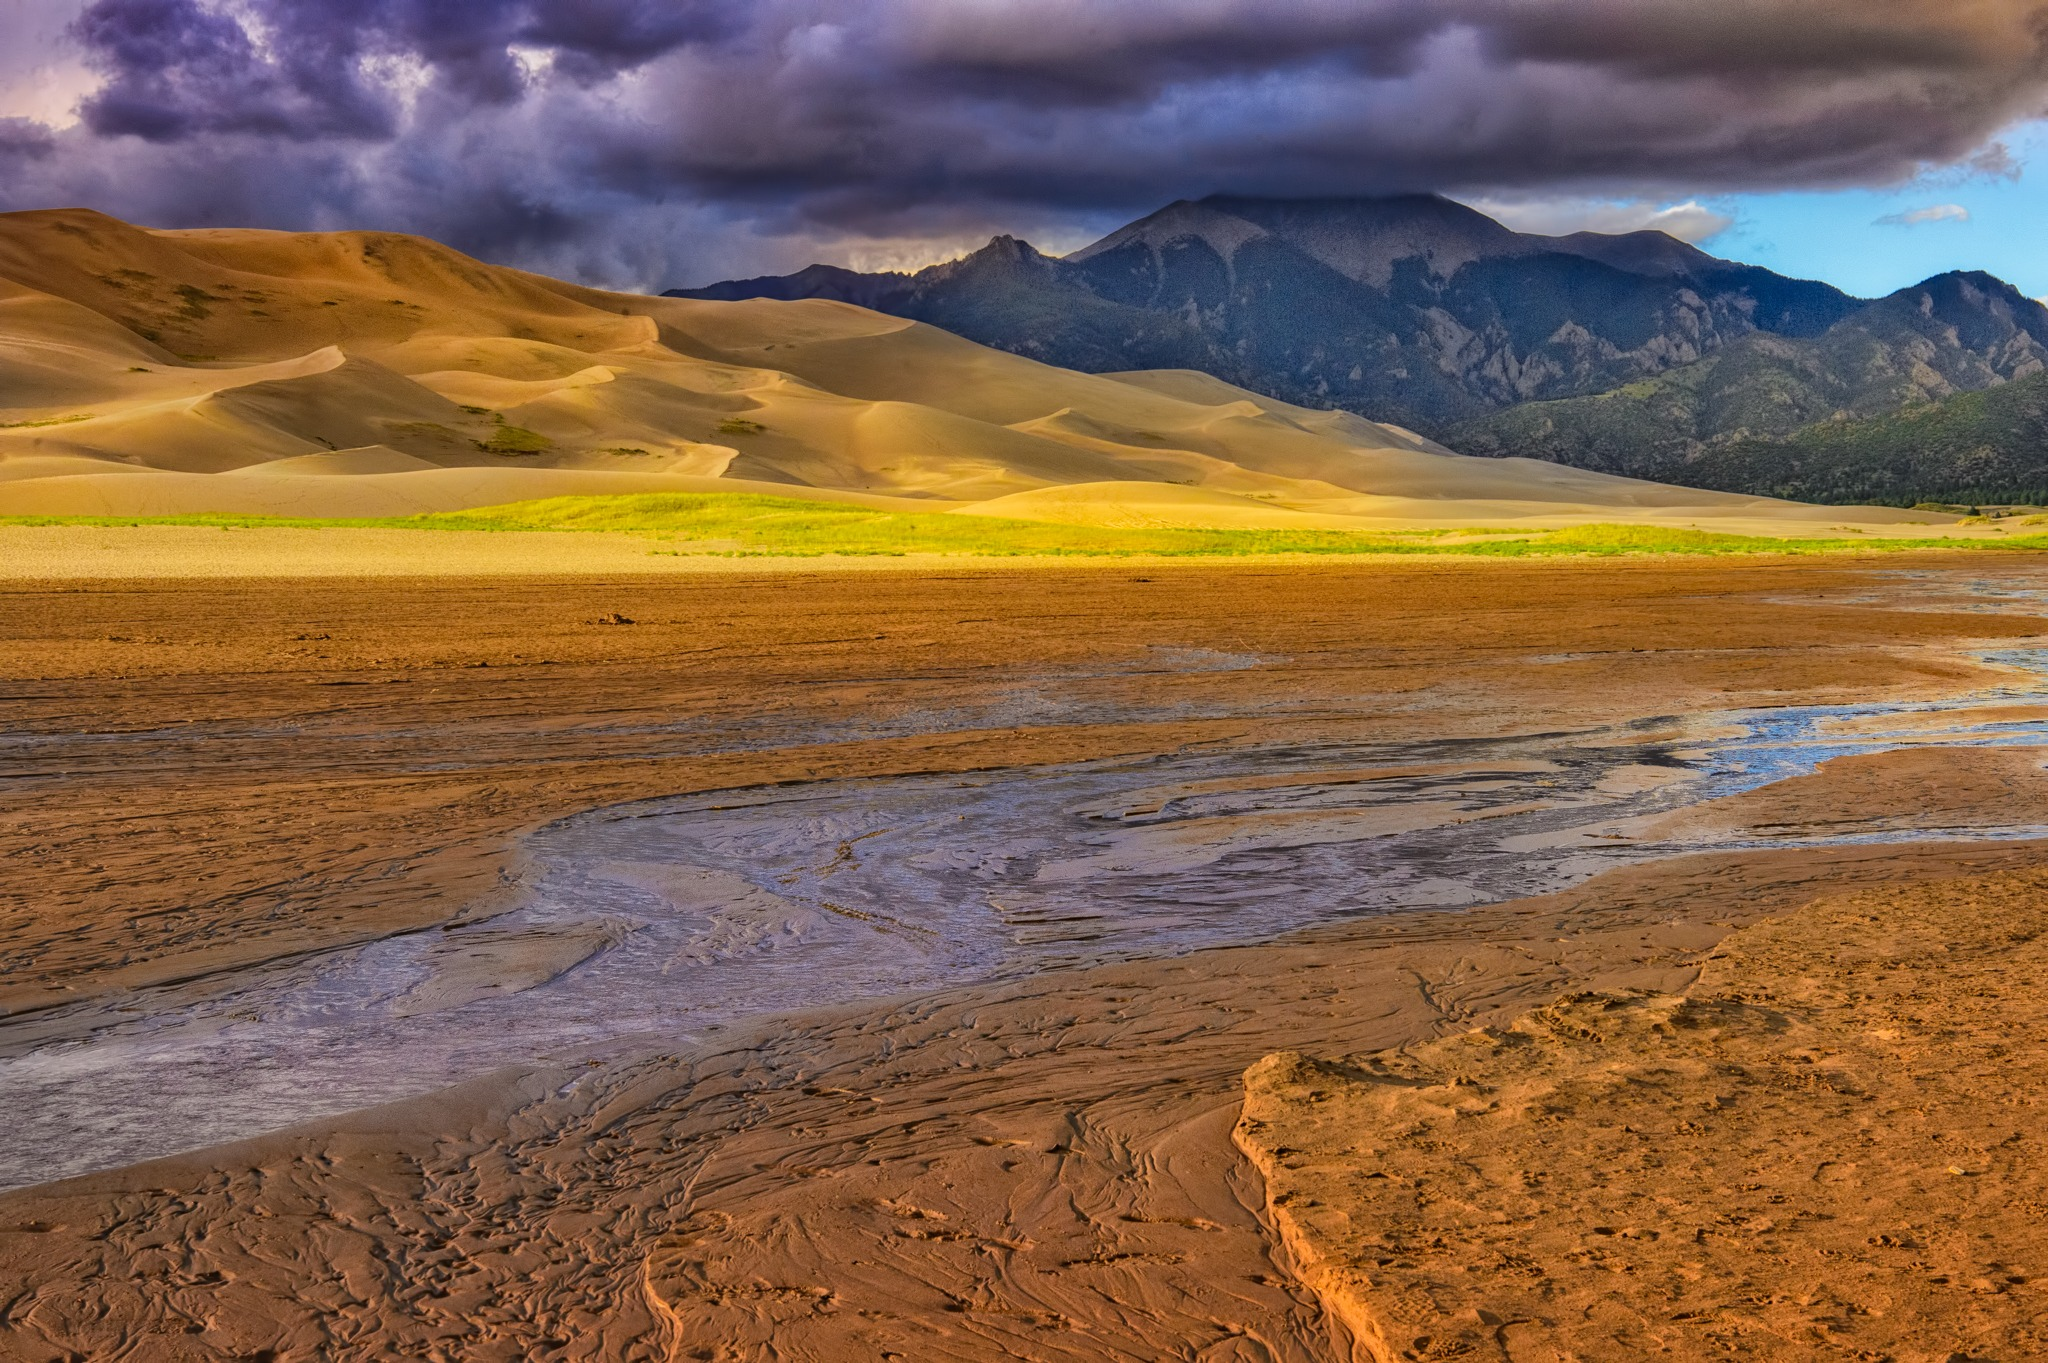 Golden afternoon light manages to sneak under the looming cloud cover of a retreating storm in Great Sand Dunes National Park and Preserve near Alamosa, Colorado.